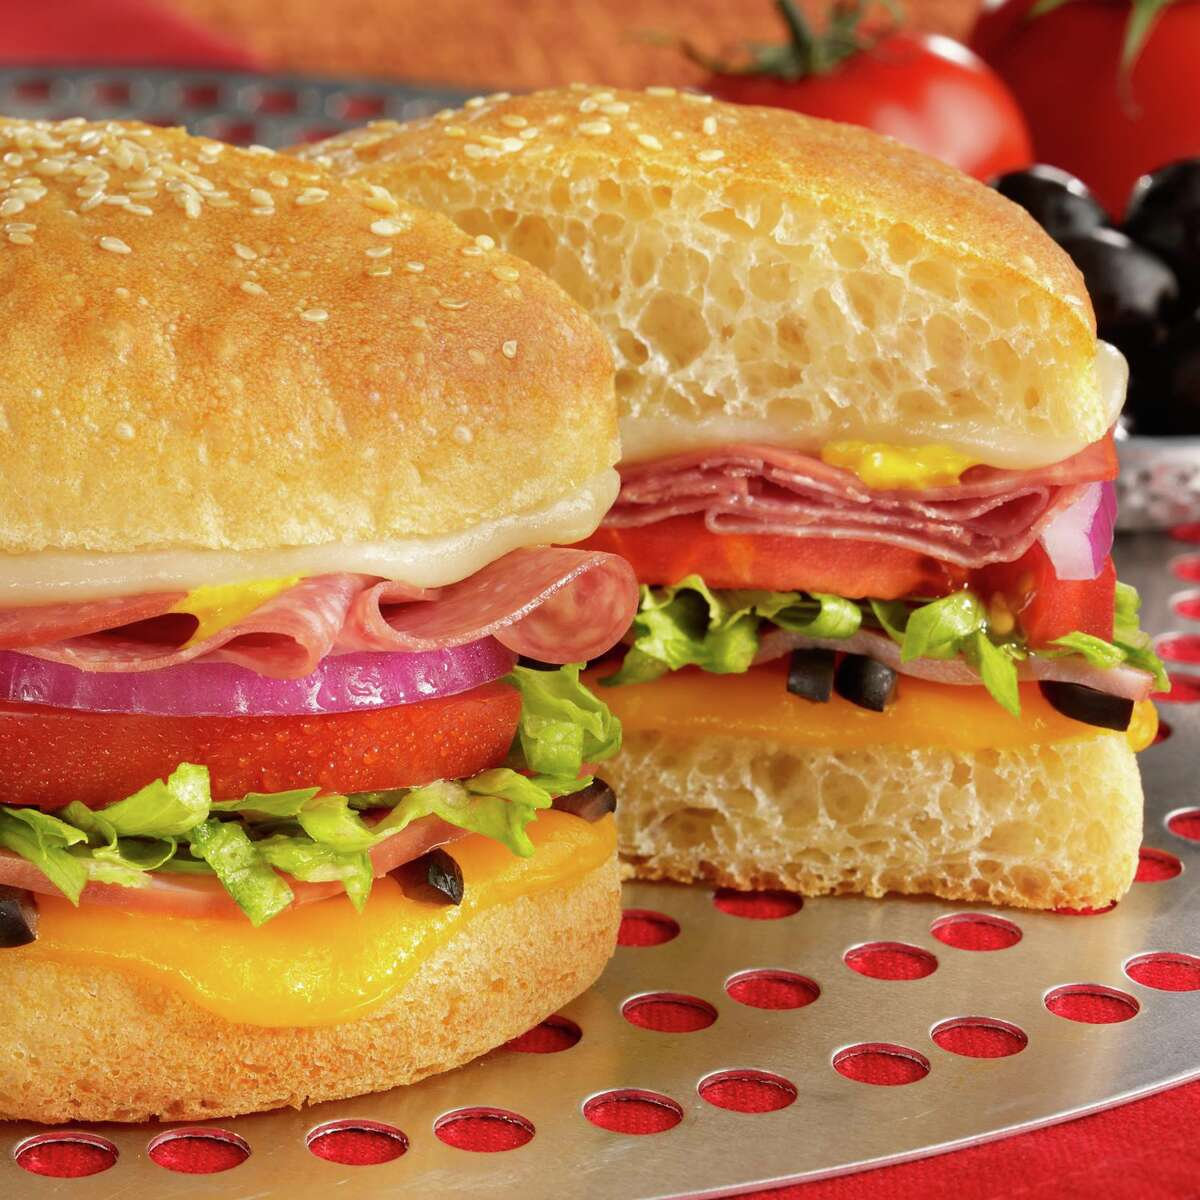 Schlotzsky's The Texas-founded bakery-cafe is most famous for its Original sandwich, which features